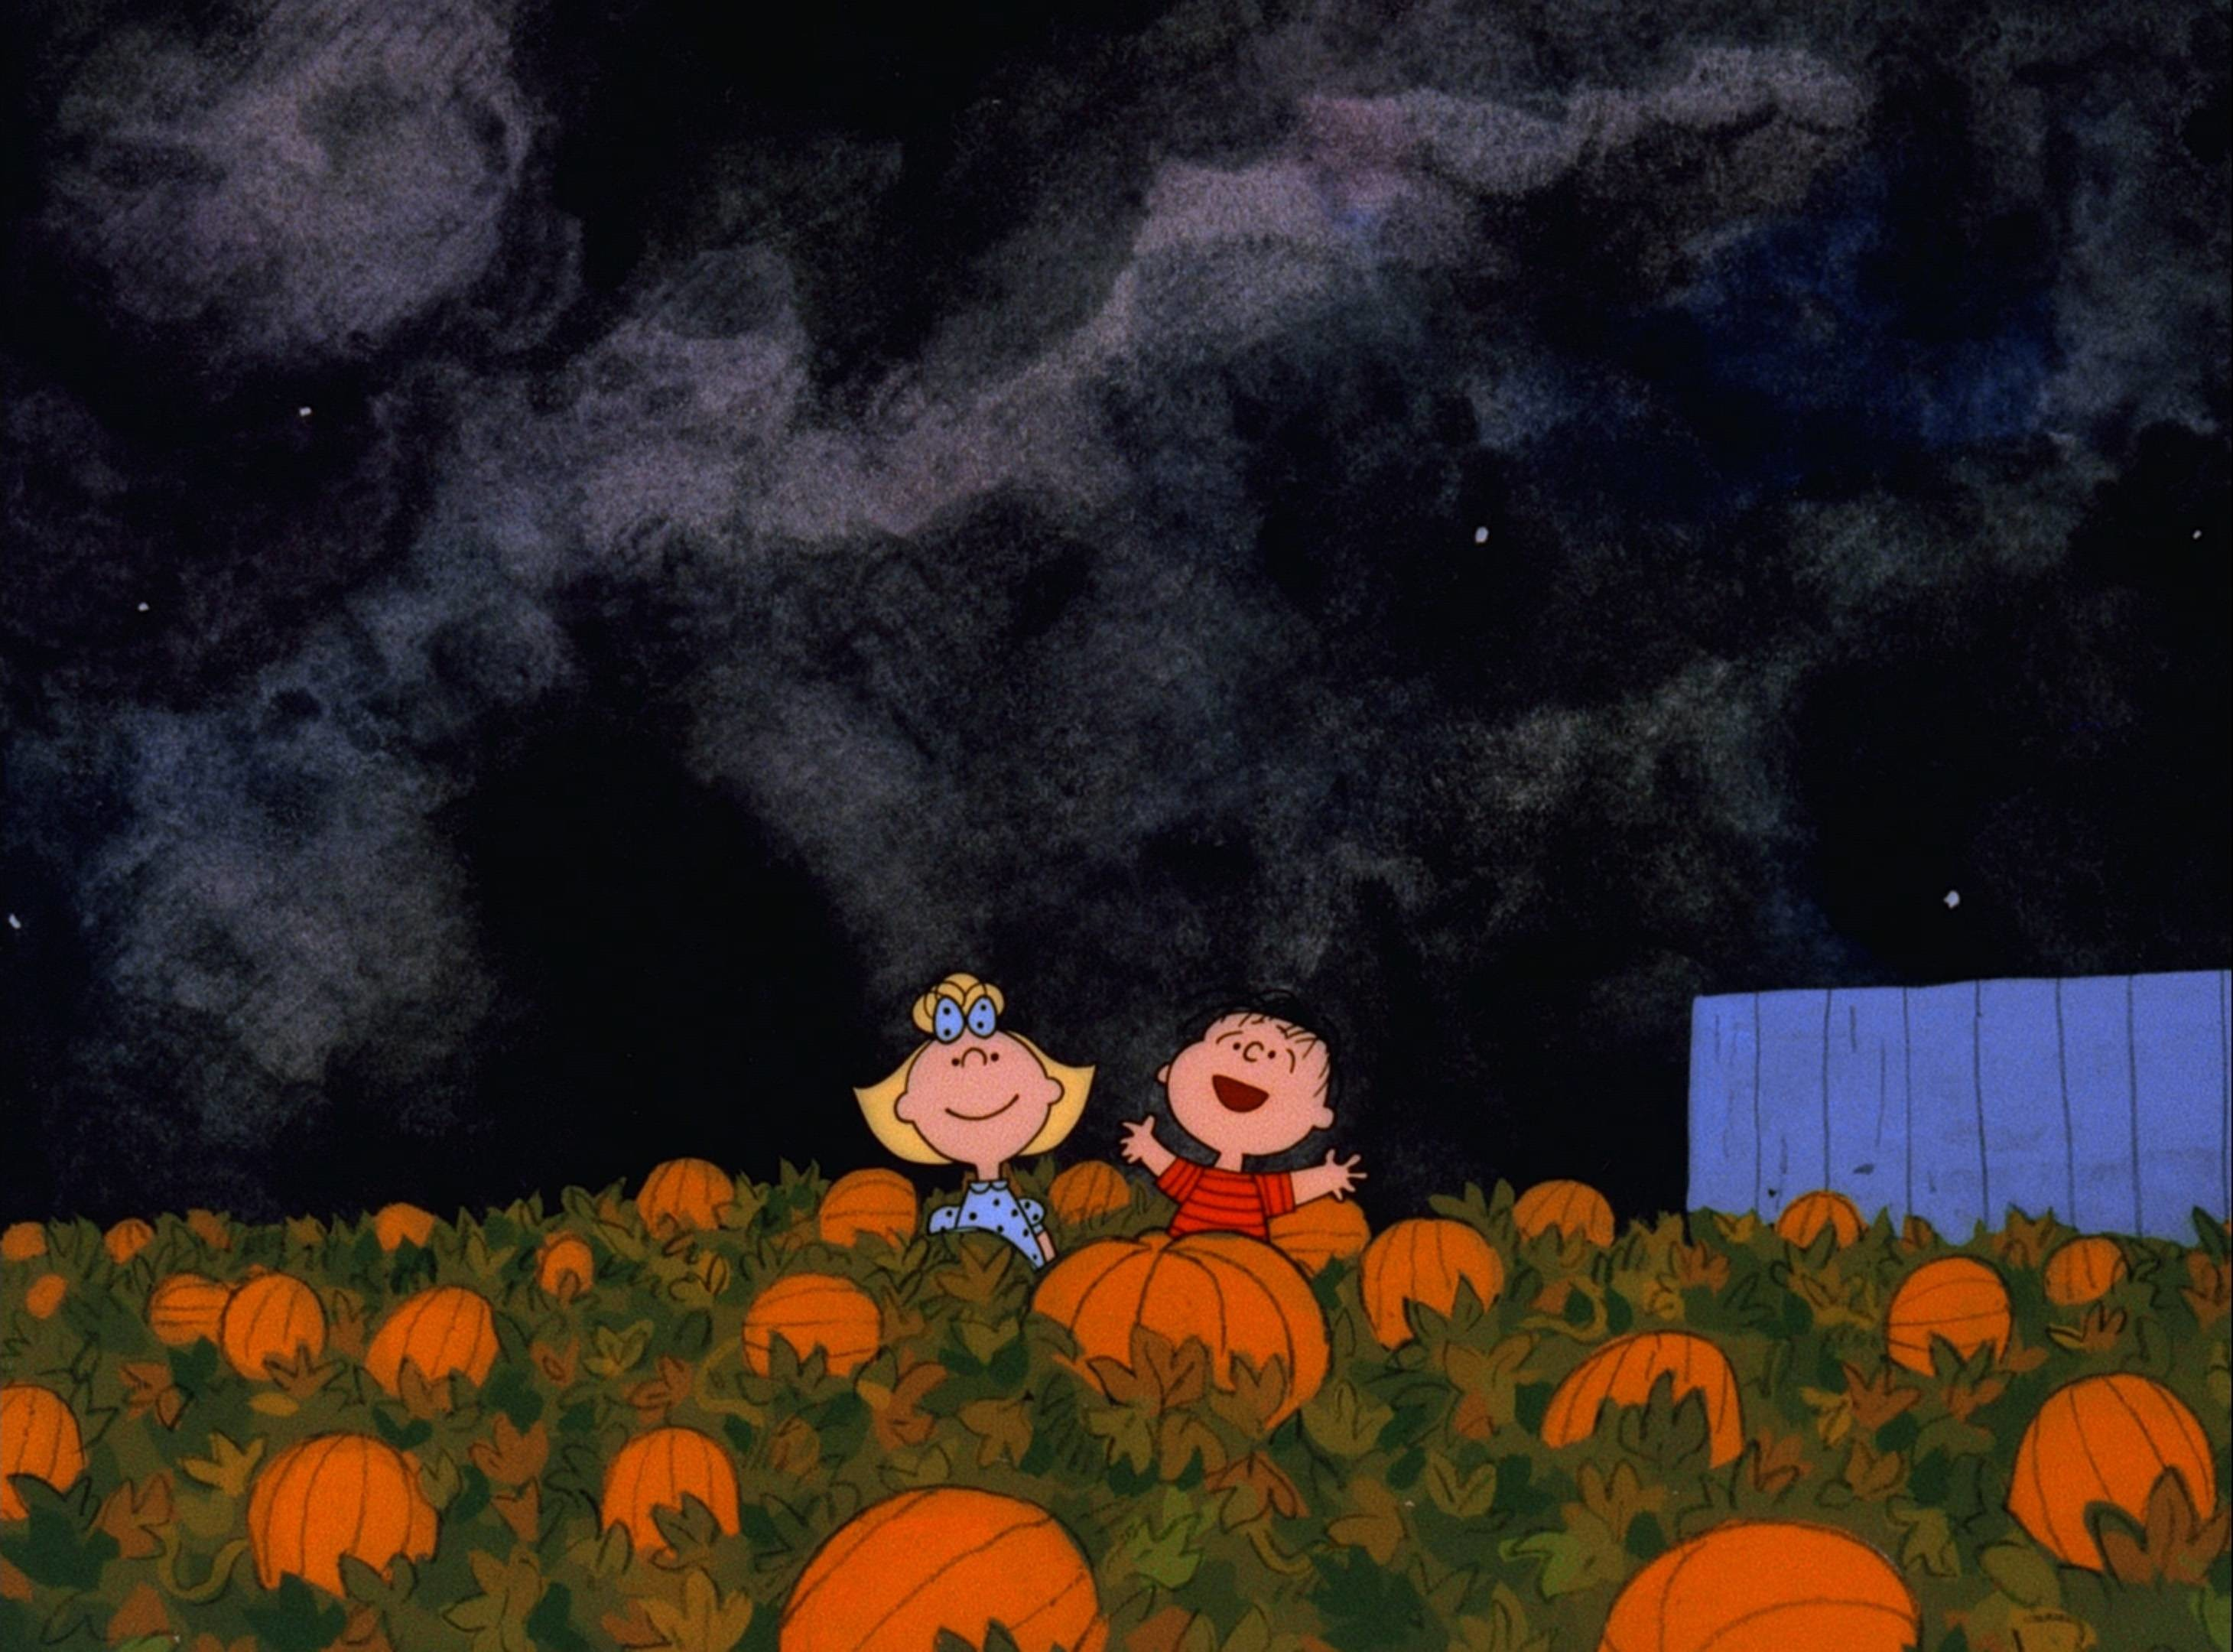 2920x2160 Charlie Brown Halloween Wallpapers - HD Wallpapers Inn